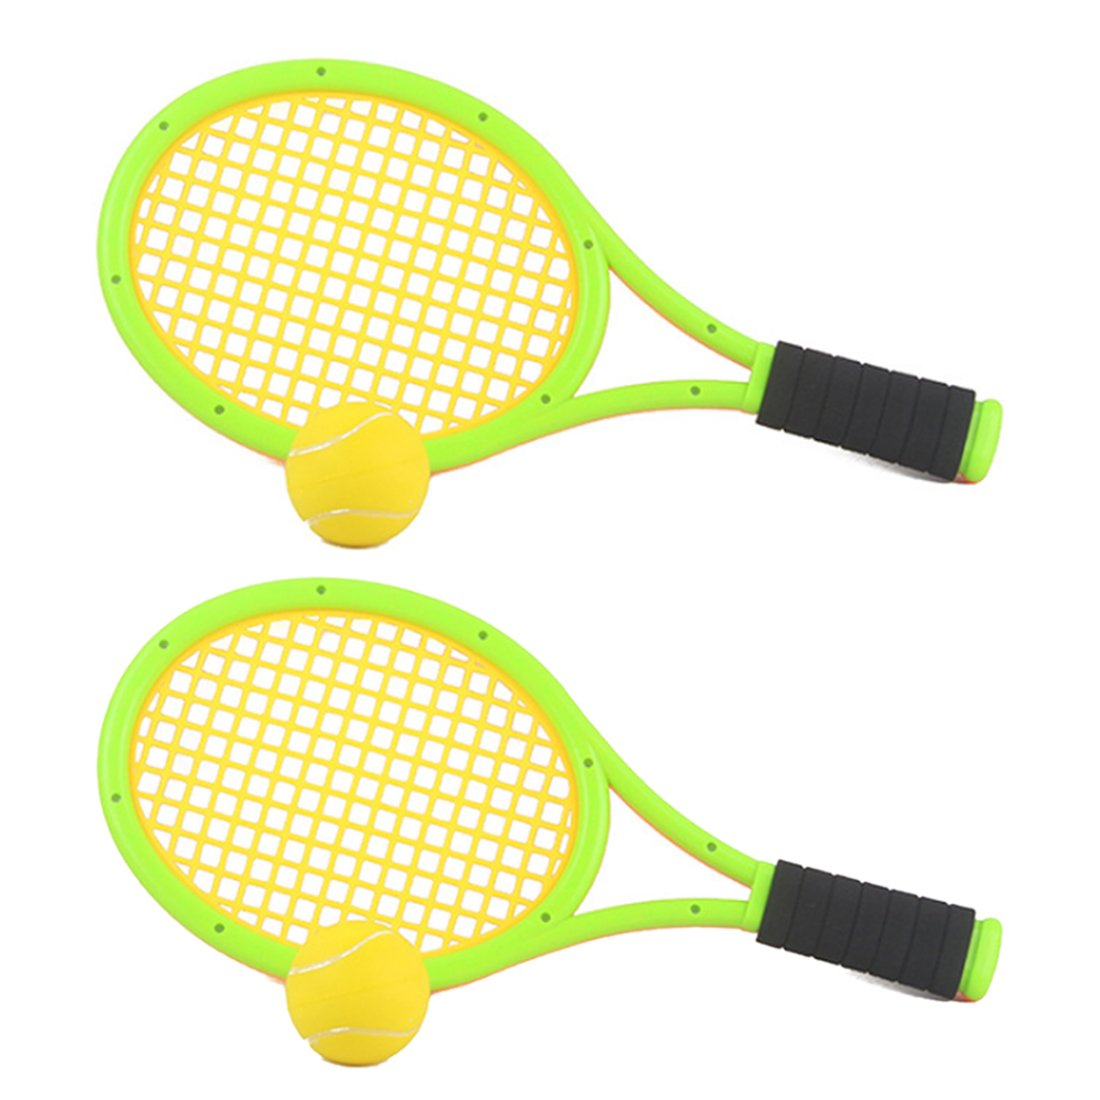 FenglinTech One set of elastic tennis racket children's outdoor sports toys - Green